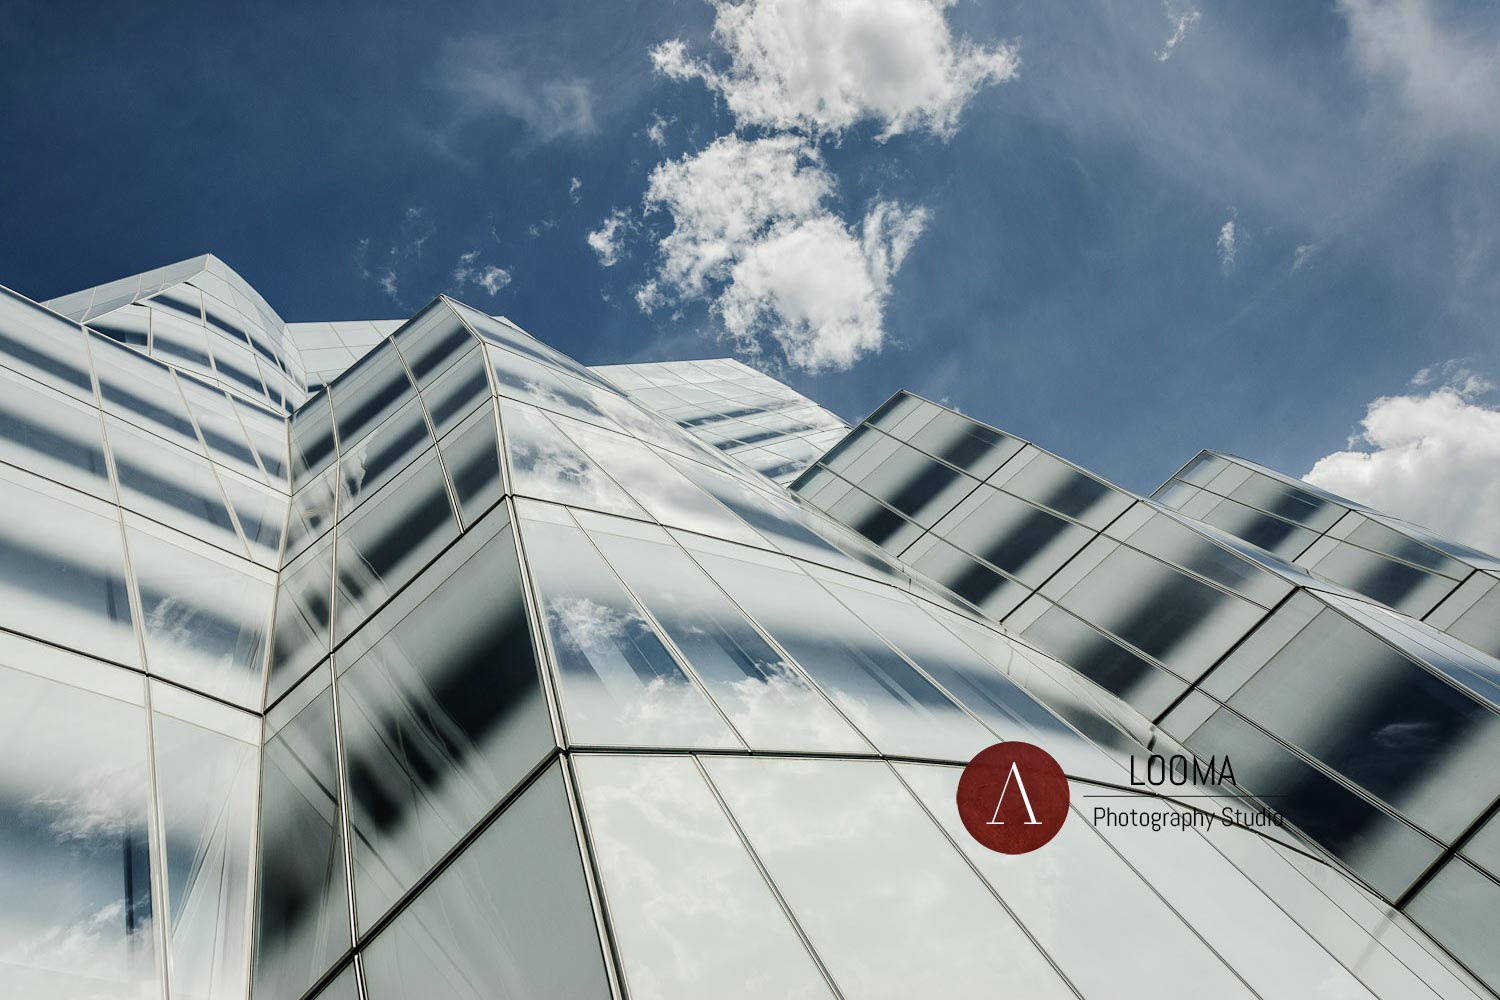 Corporate and Architecture Photographic services in Rome, Italy